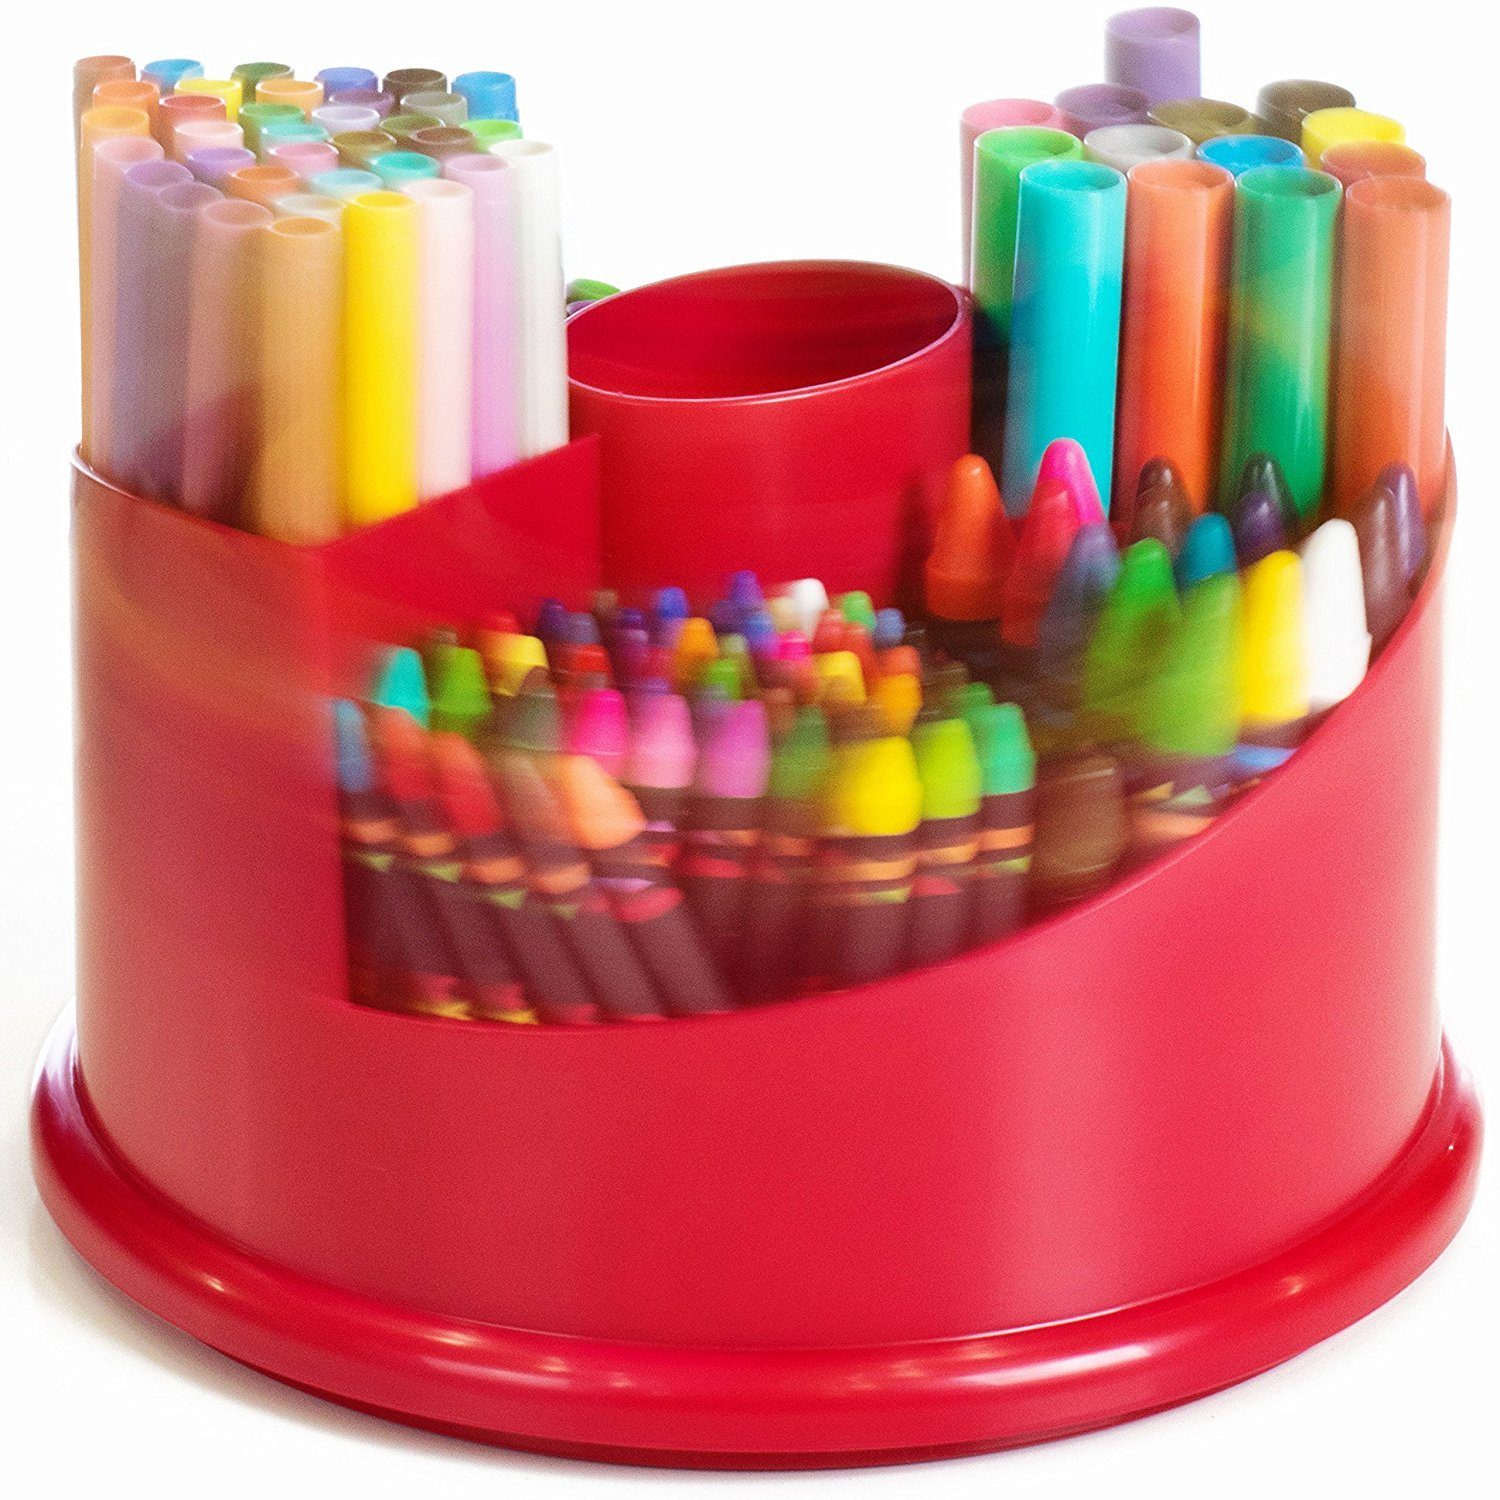 All In 1 Spinning Art Caddy with Set of Crayons, WASHABLE Markers, Scented Markers and Glitter Glue, 151 Piece Set by Kraftic (Image #3)